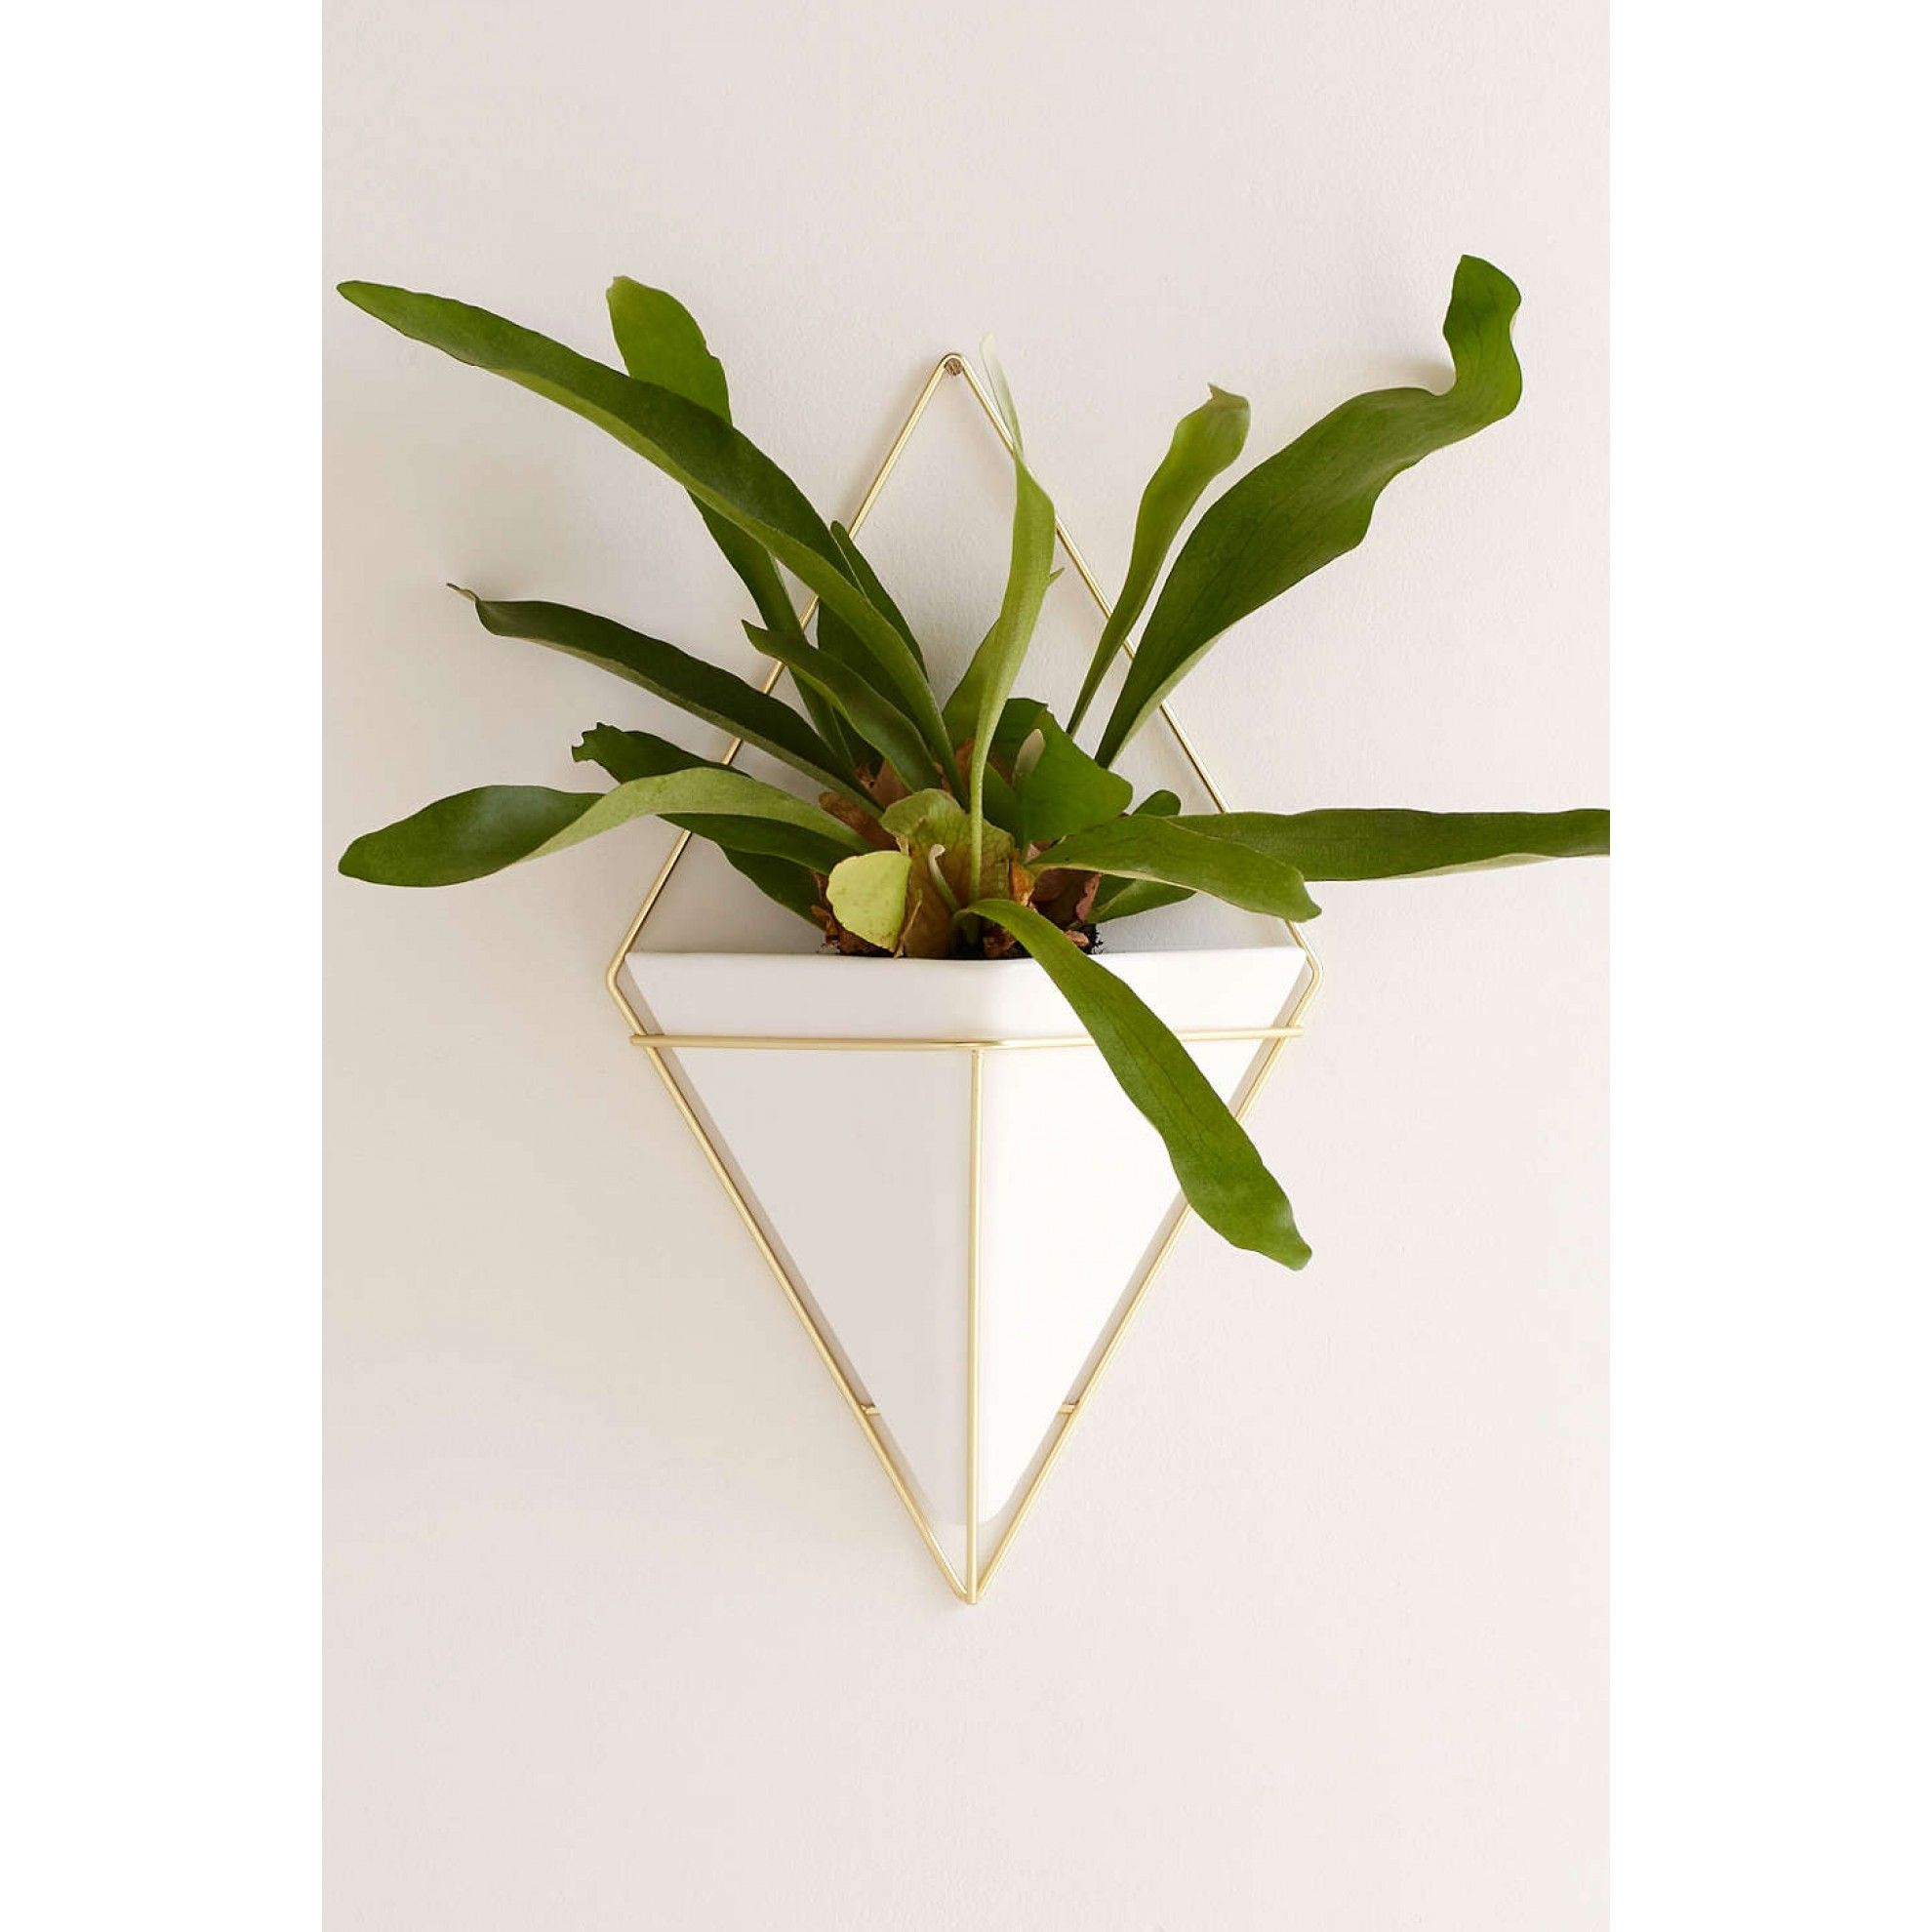 Shop Umbra Trigg Wall Planter At Urban Outfitters Today We